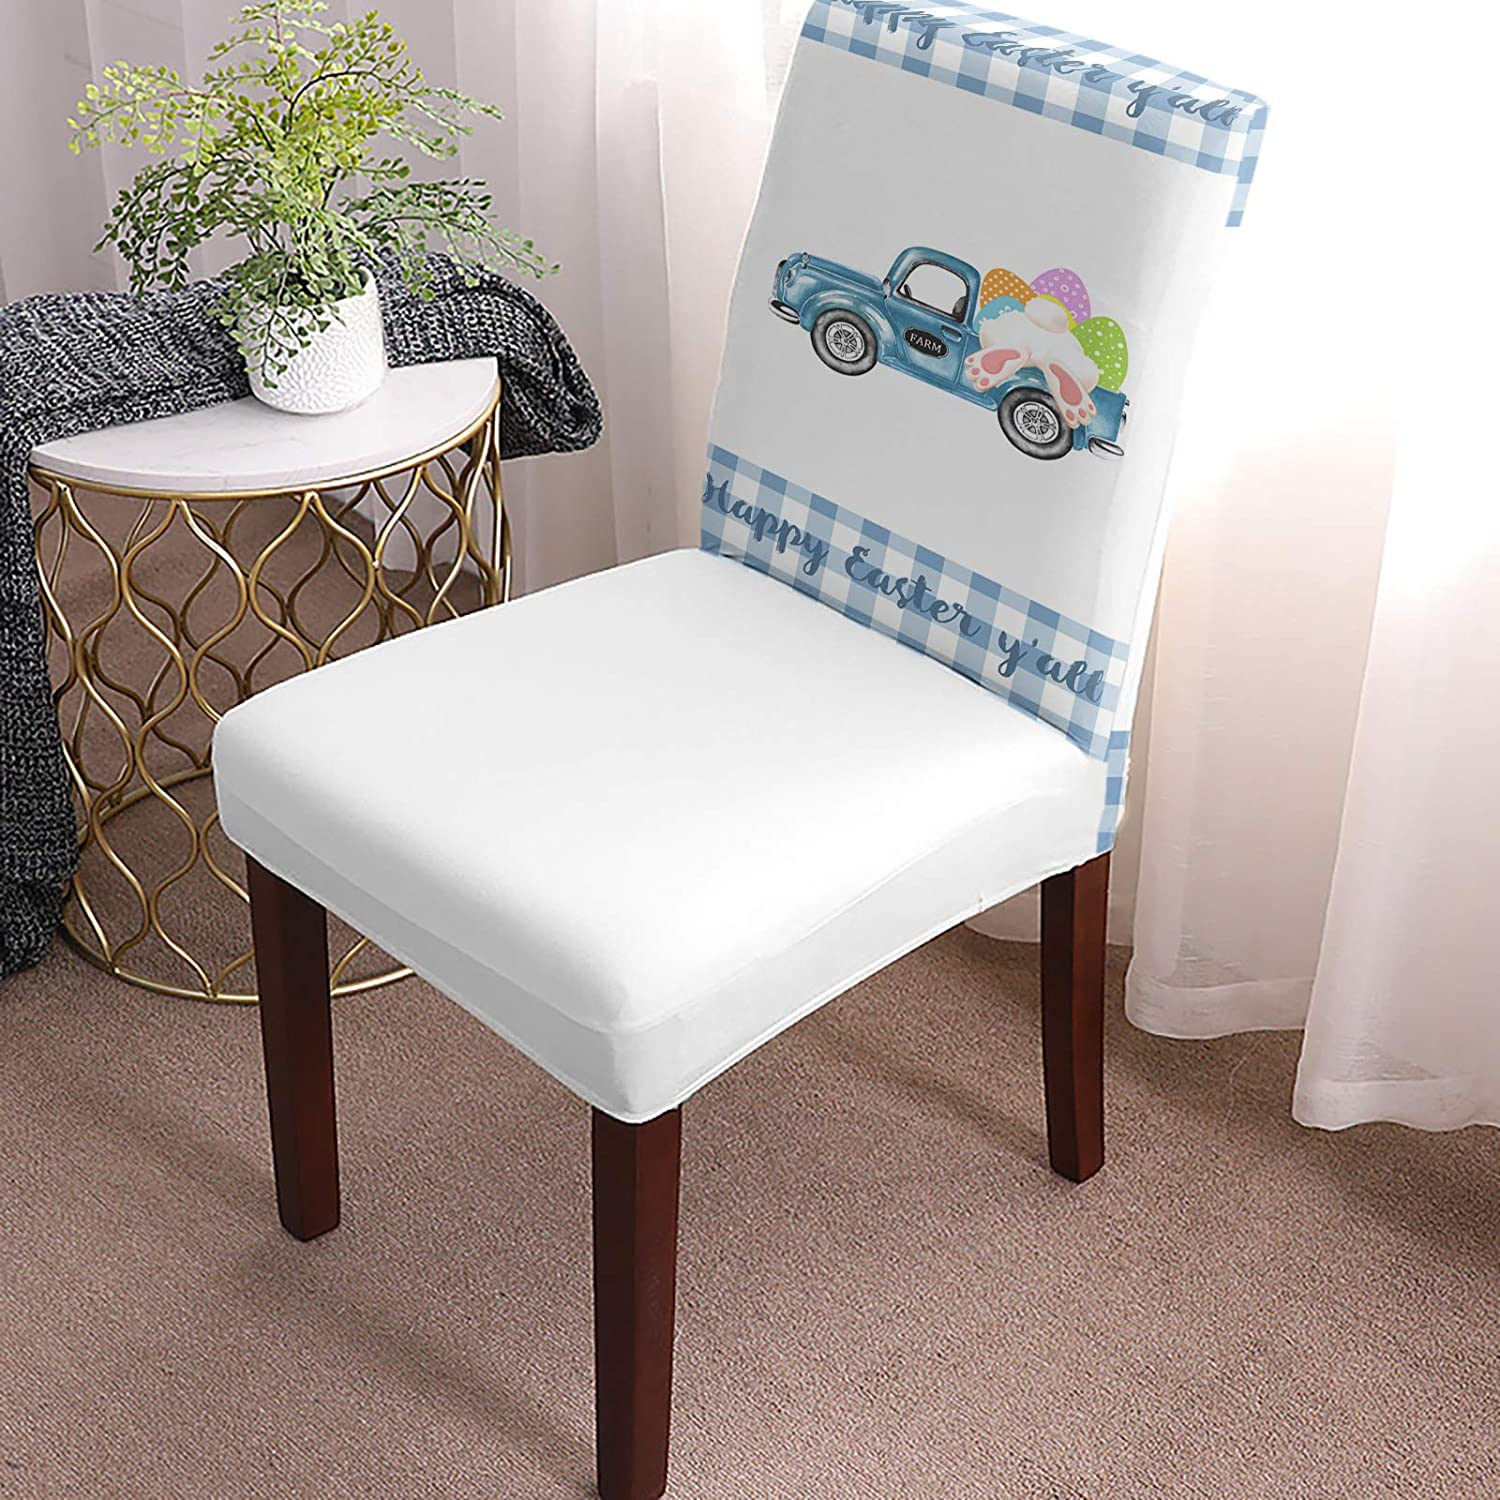 Stretch Chair Cover Dining Room Covers High quality of Inexpensive Set Car Spring 8